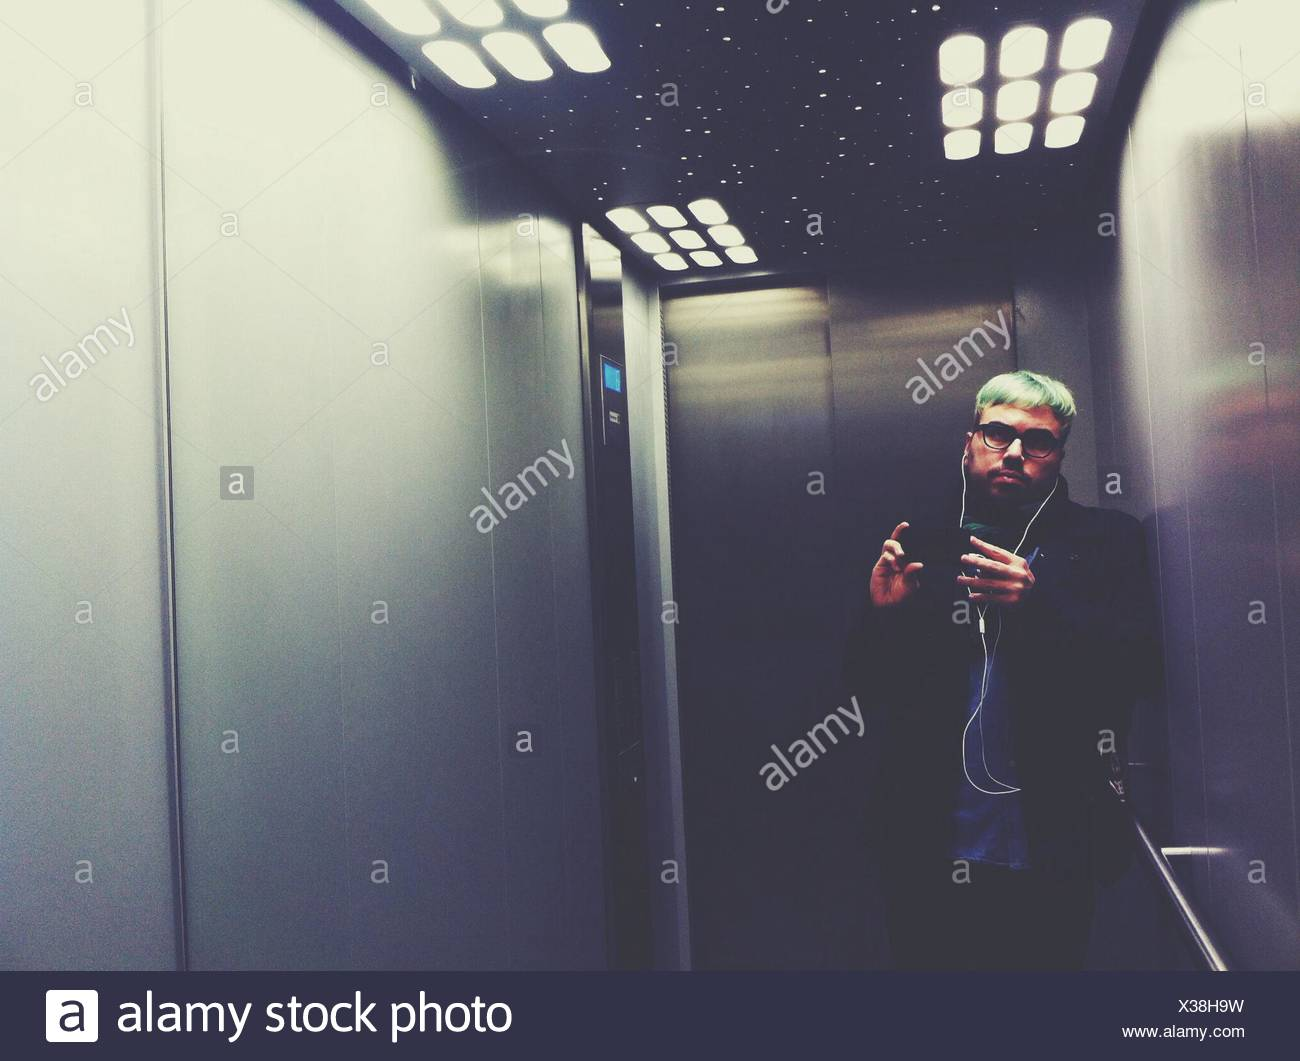 Young Man Listening To Mp3 Player In Elevator - Stock Image